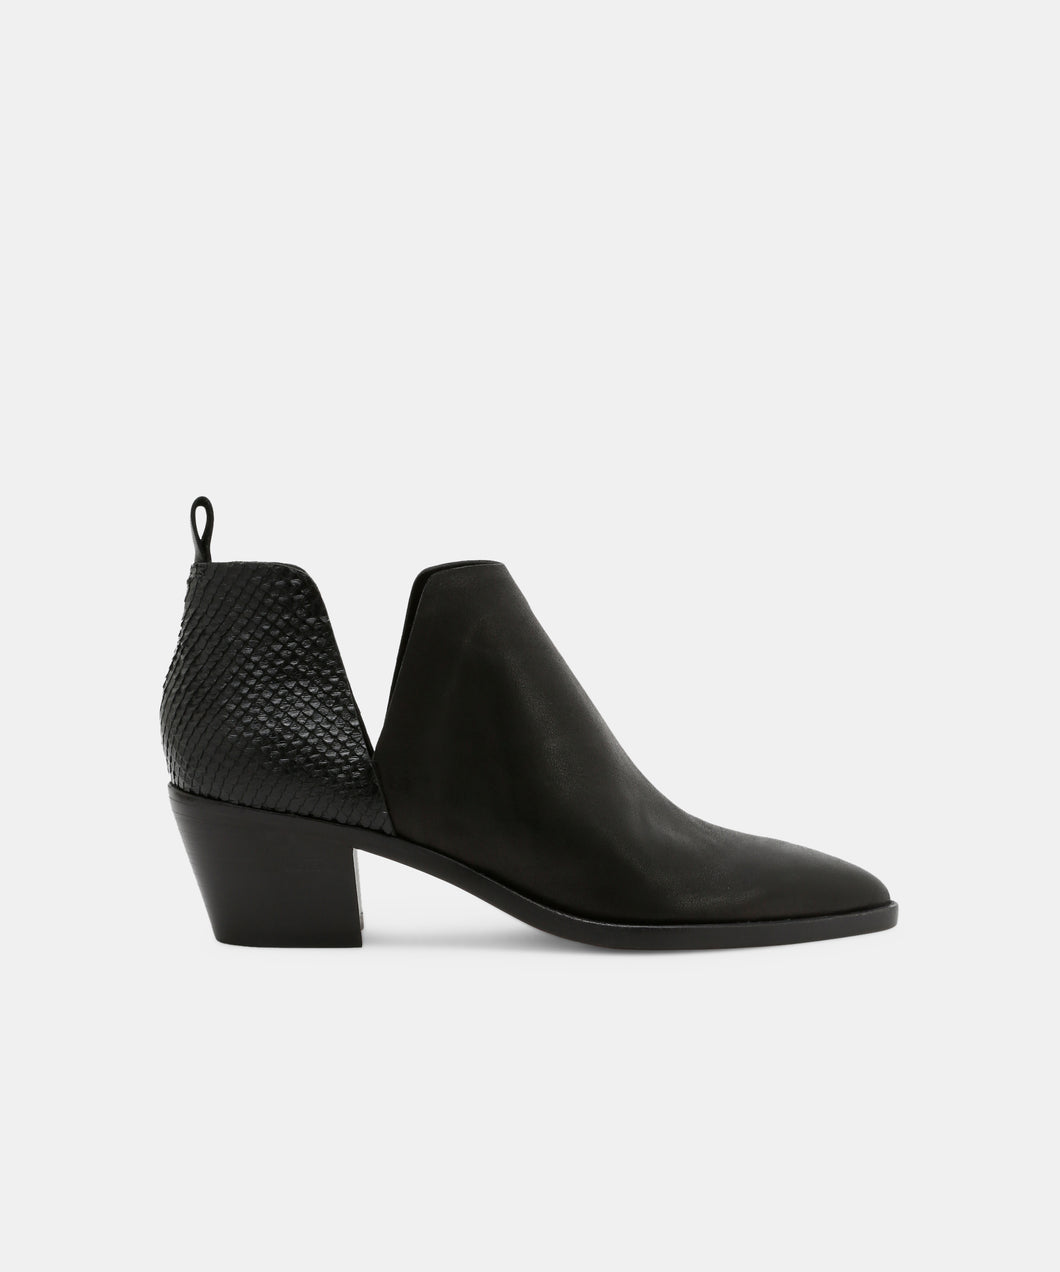 SONNI BOOTIES IN BLACK -   Dolce Vita